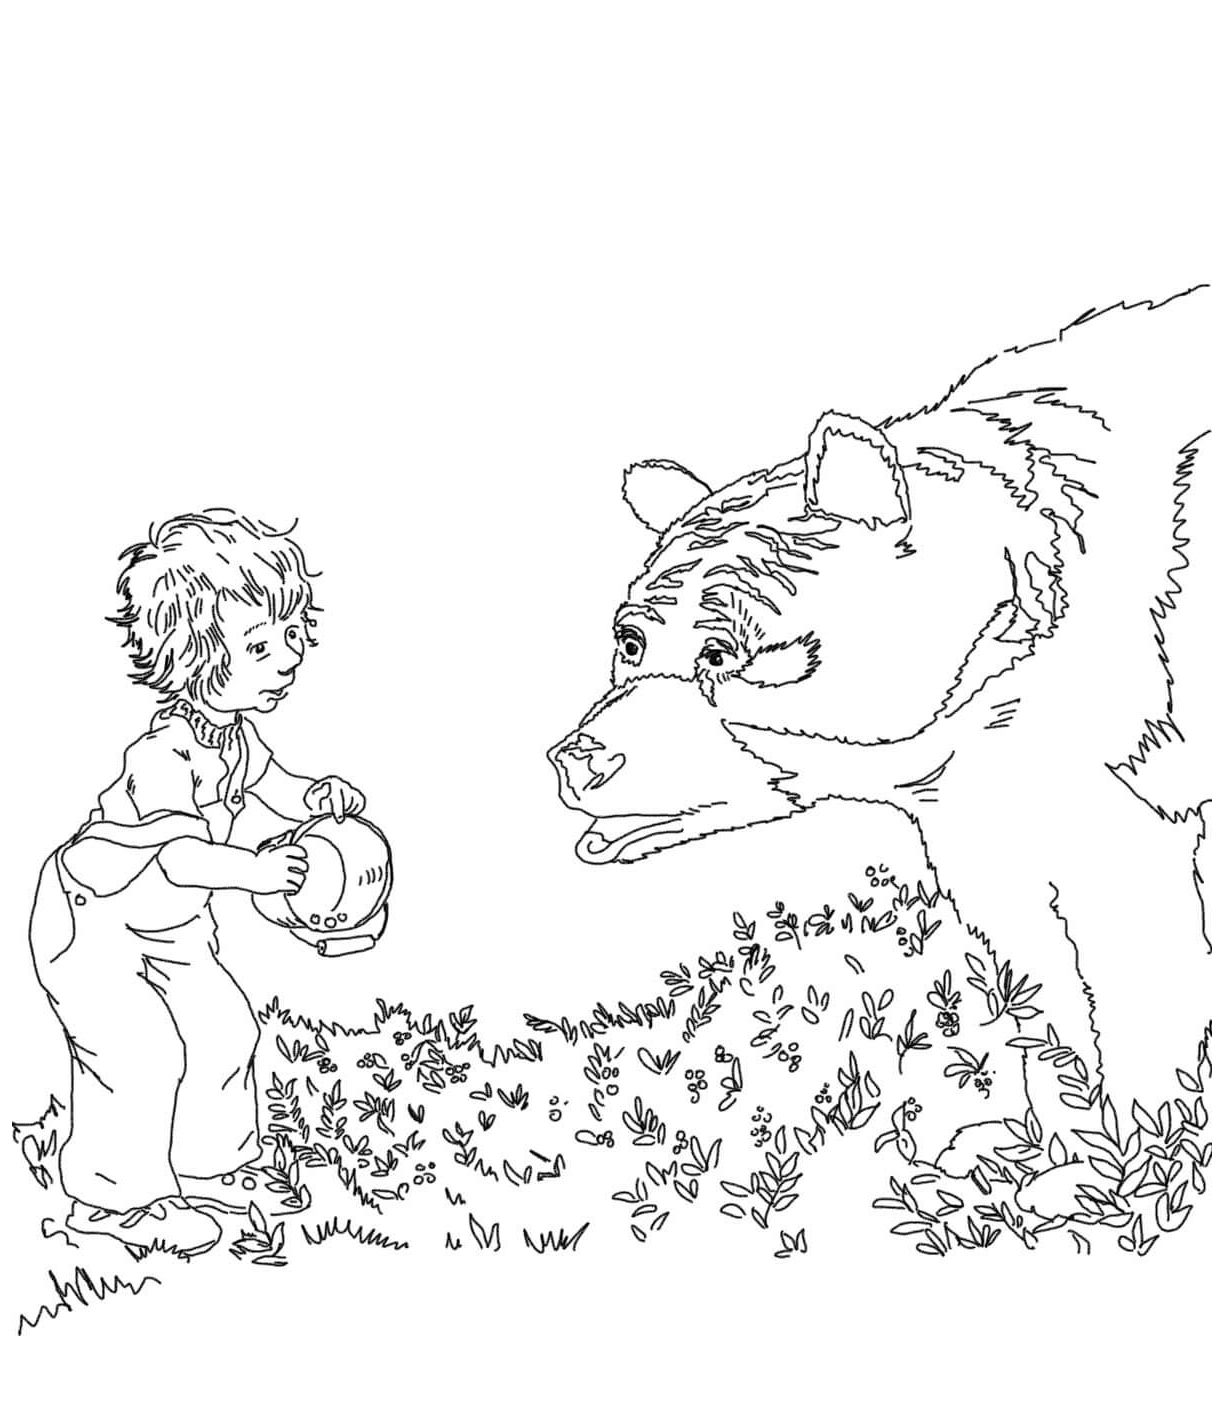 blueberries for sal coloring page blueberries for sal coloring page blueberries my older page coloring blueberries sal for